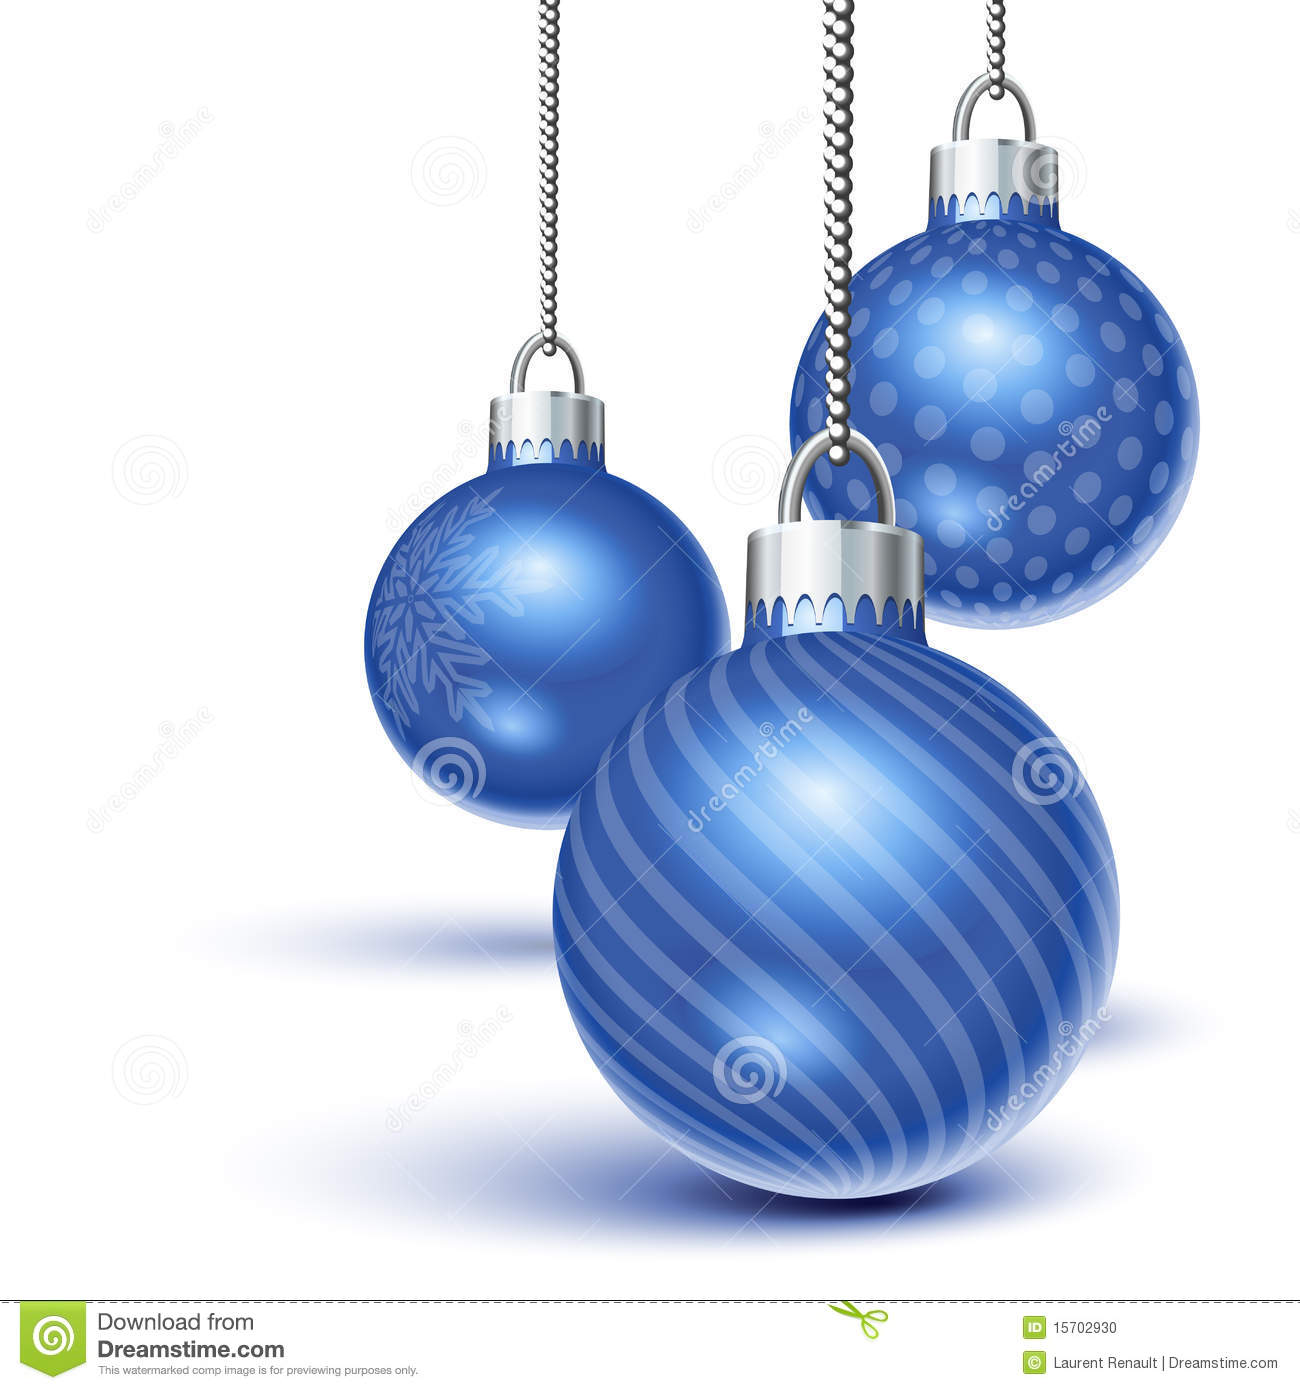 Blue Christmas Ornaments Stock Photo - Image: 15702930